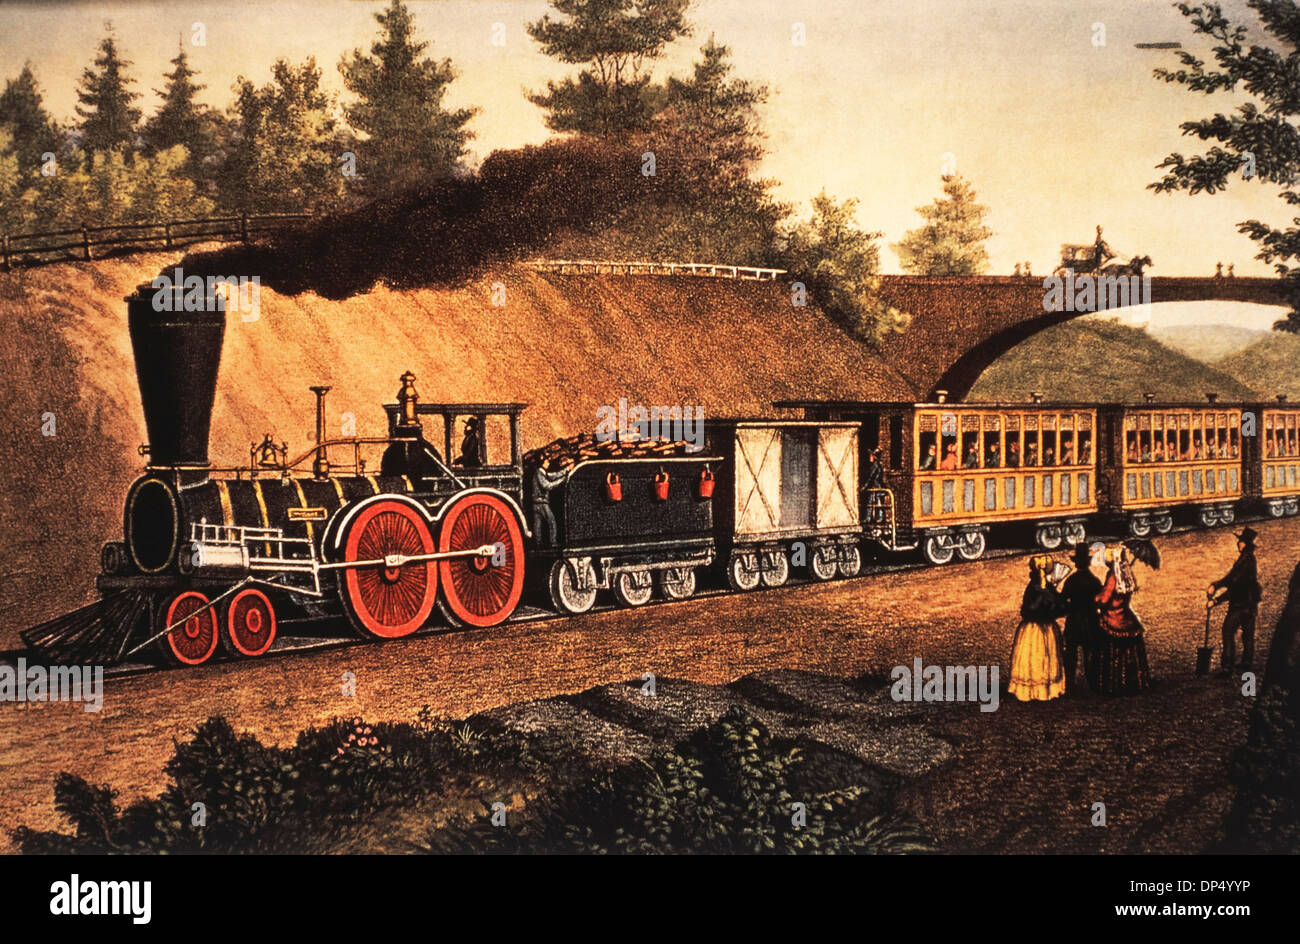 The Express Train, Lithograph, Currier & Ives, 1871 - Stock Image